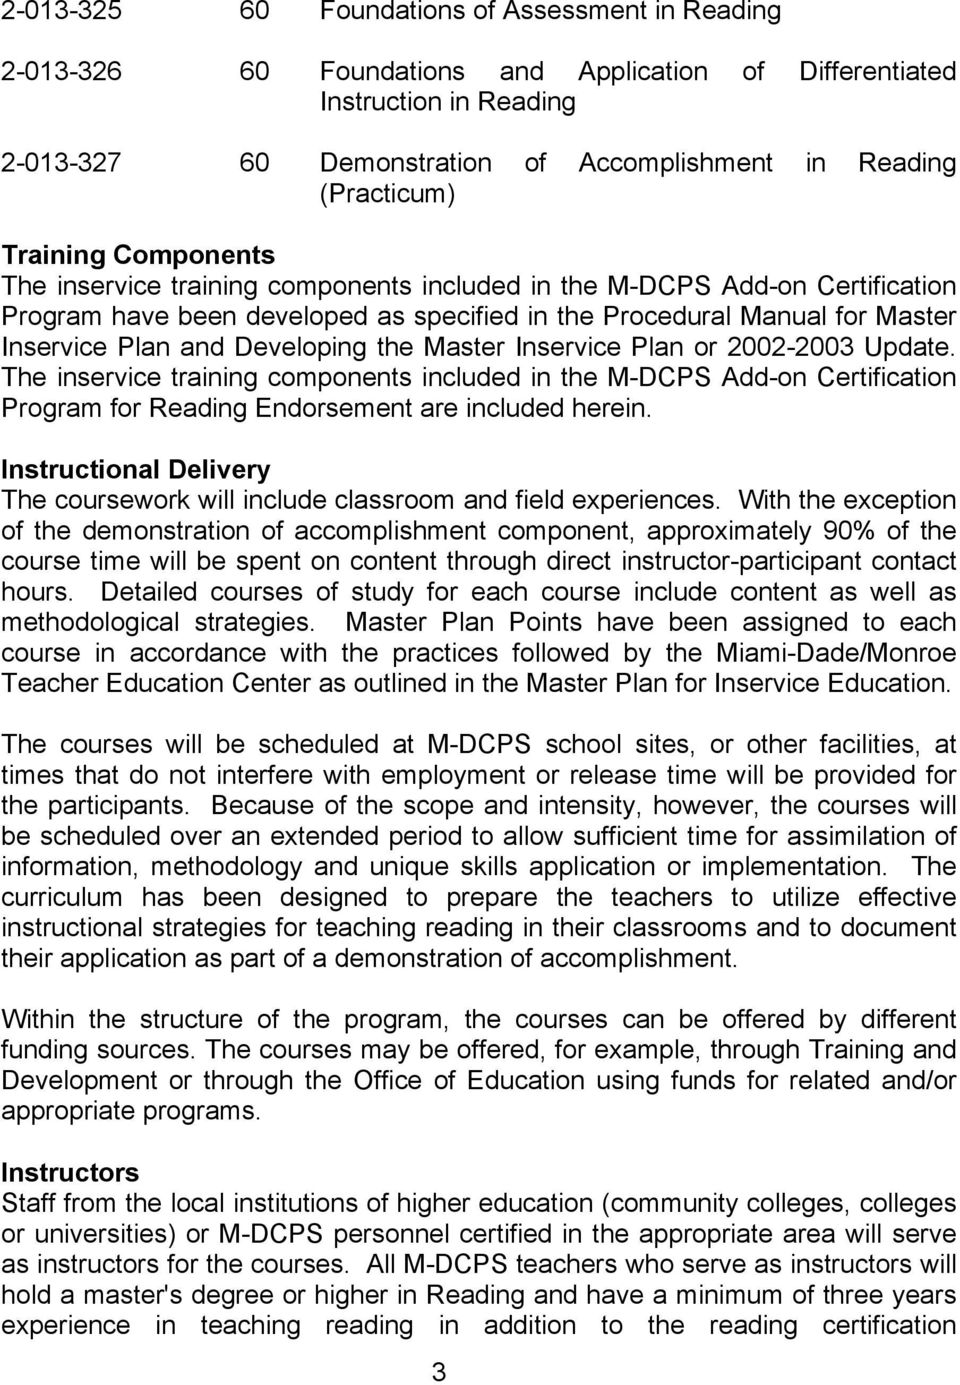 Developing the Master Inservice Plan or 2002-2003 Update. The inservice training components included in the M-DCPS Add-on Certification Program for Reading Endorsement are included herein.